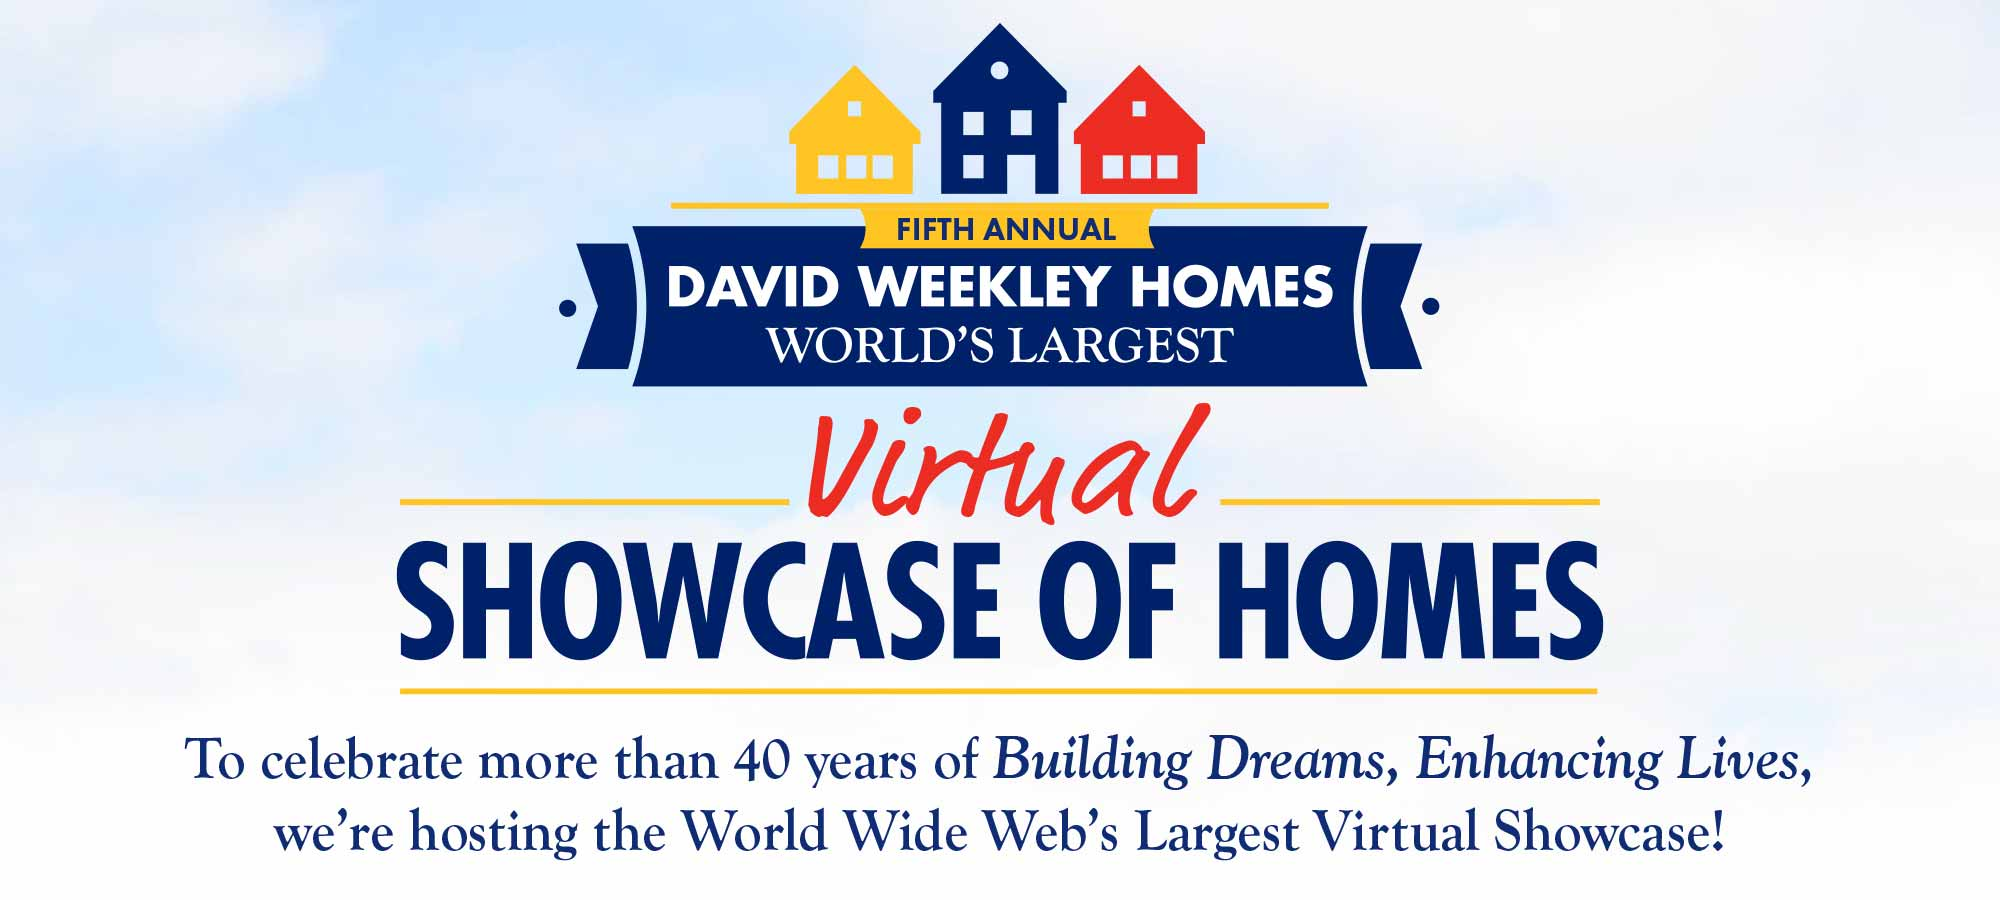 Fifth Annual David Weekley Homes World's Largest Showcase of Homes in Tampa